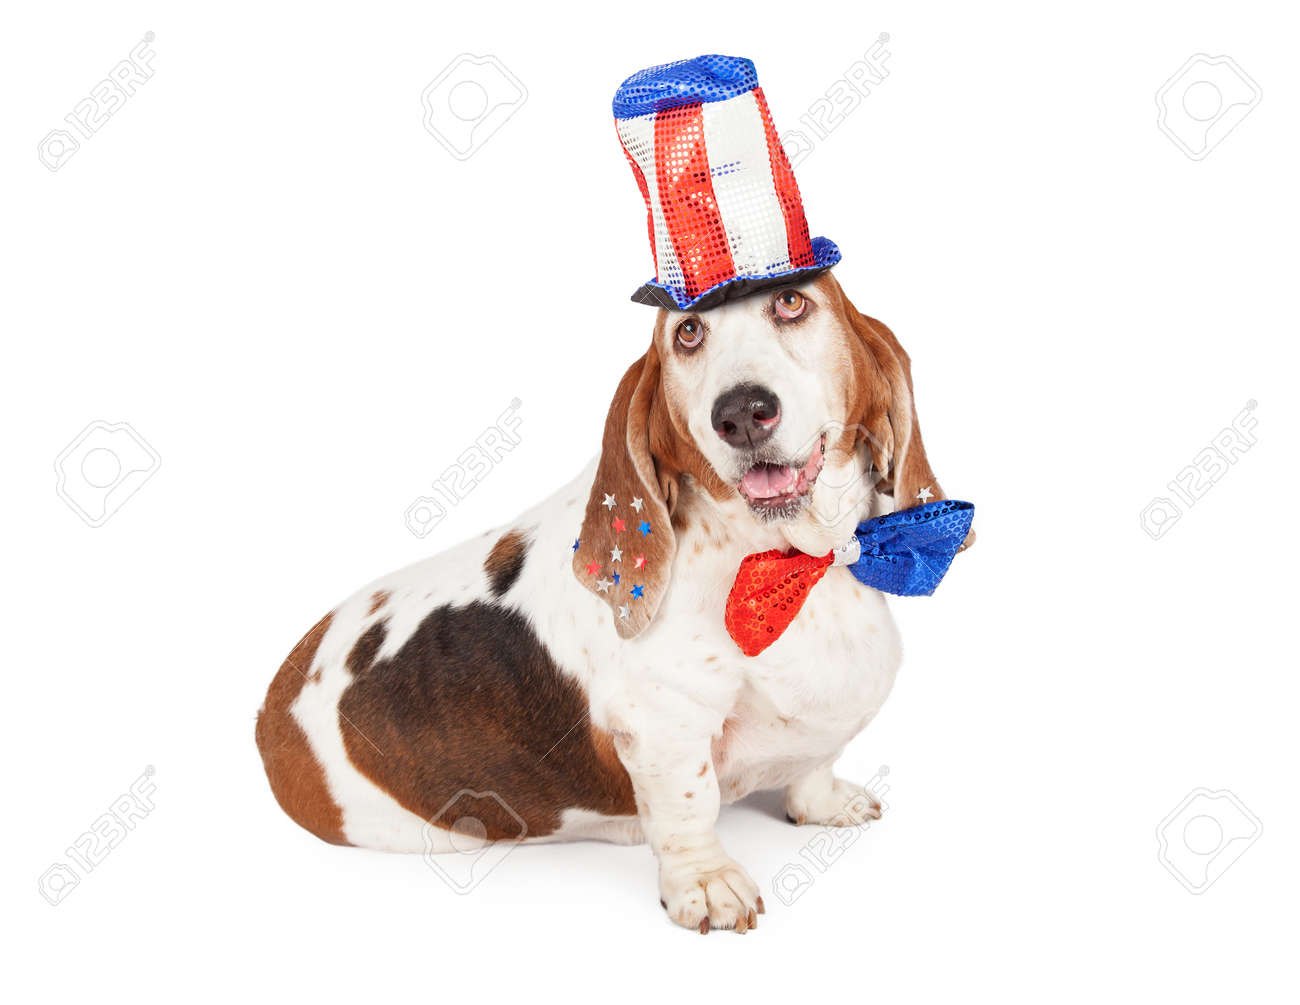 458474fabaef A cute and happy Basset Hound dog wearing a red, white and blue tall sequin